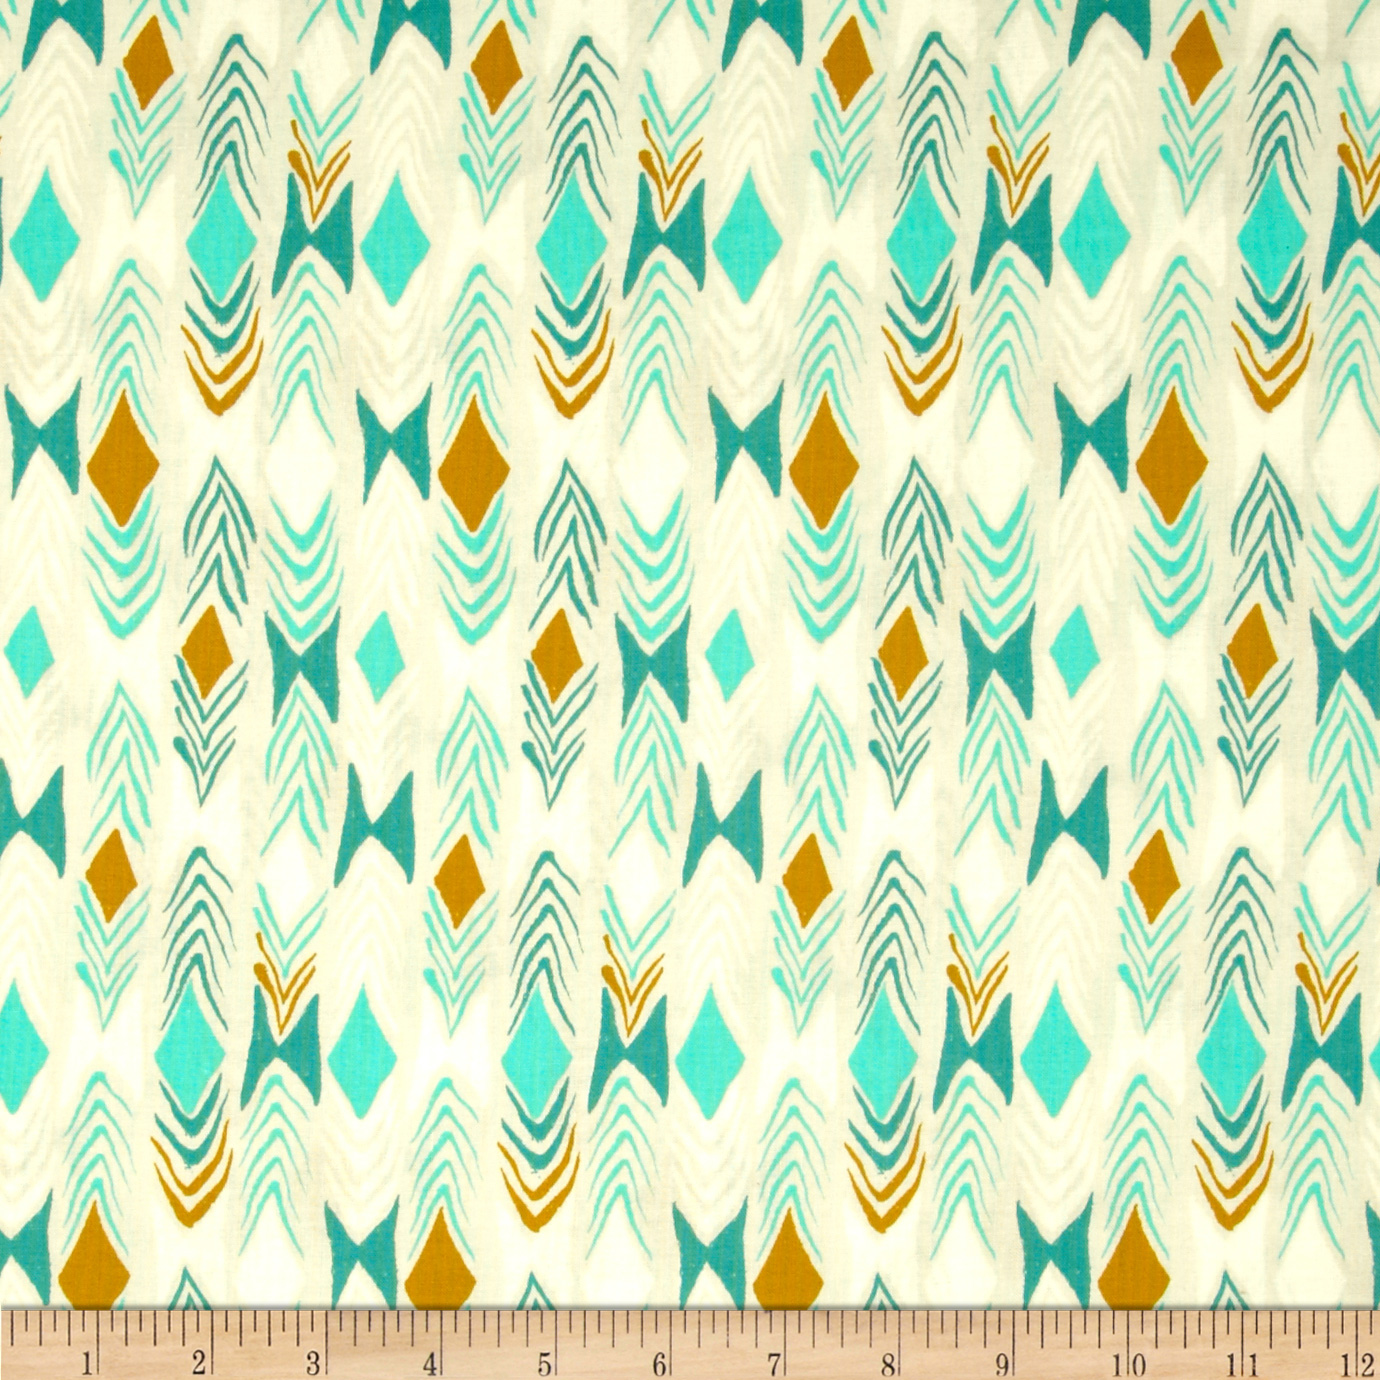 Image of Cotton & Steel August Diamond Back Teal Fabric